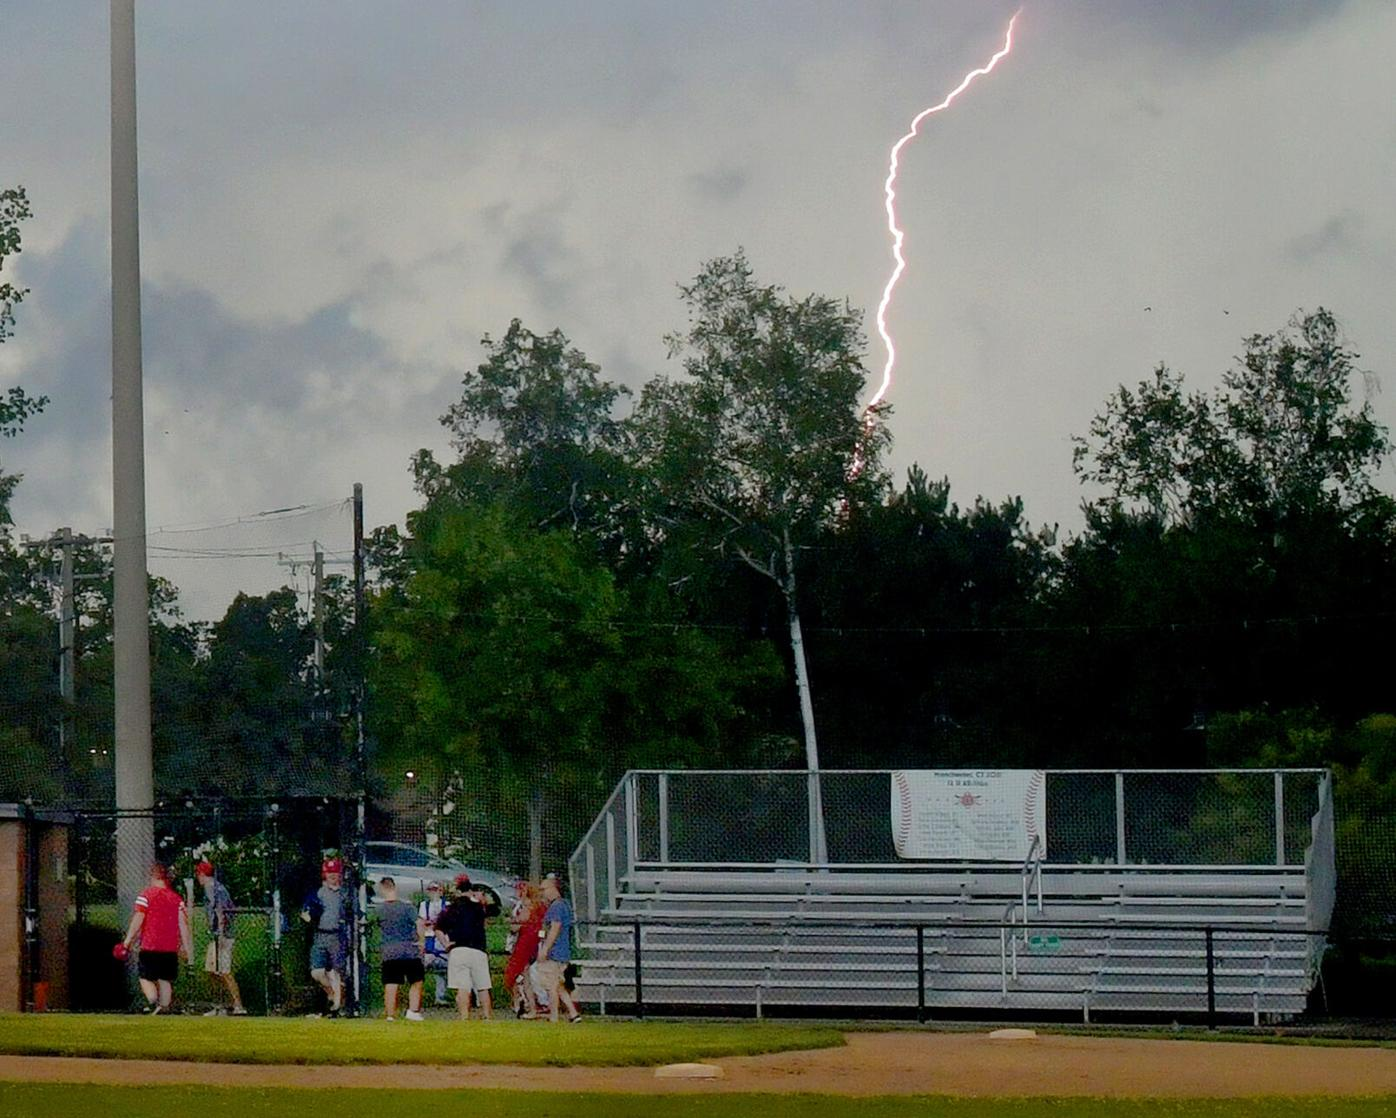 063021 MA Little League Game Weather 01a.jpg